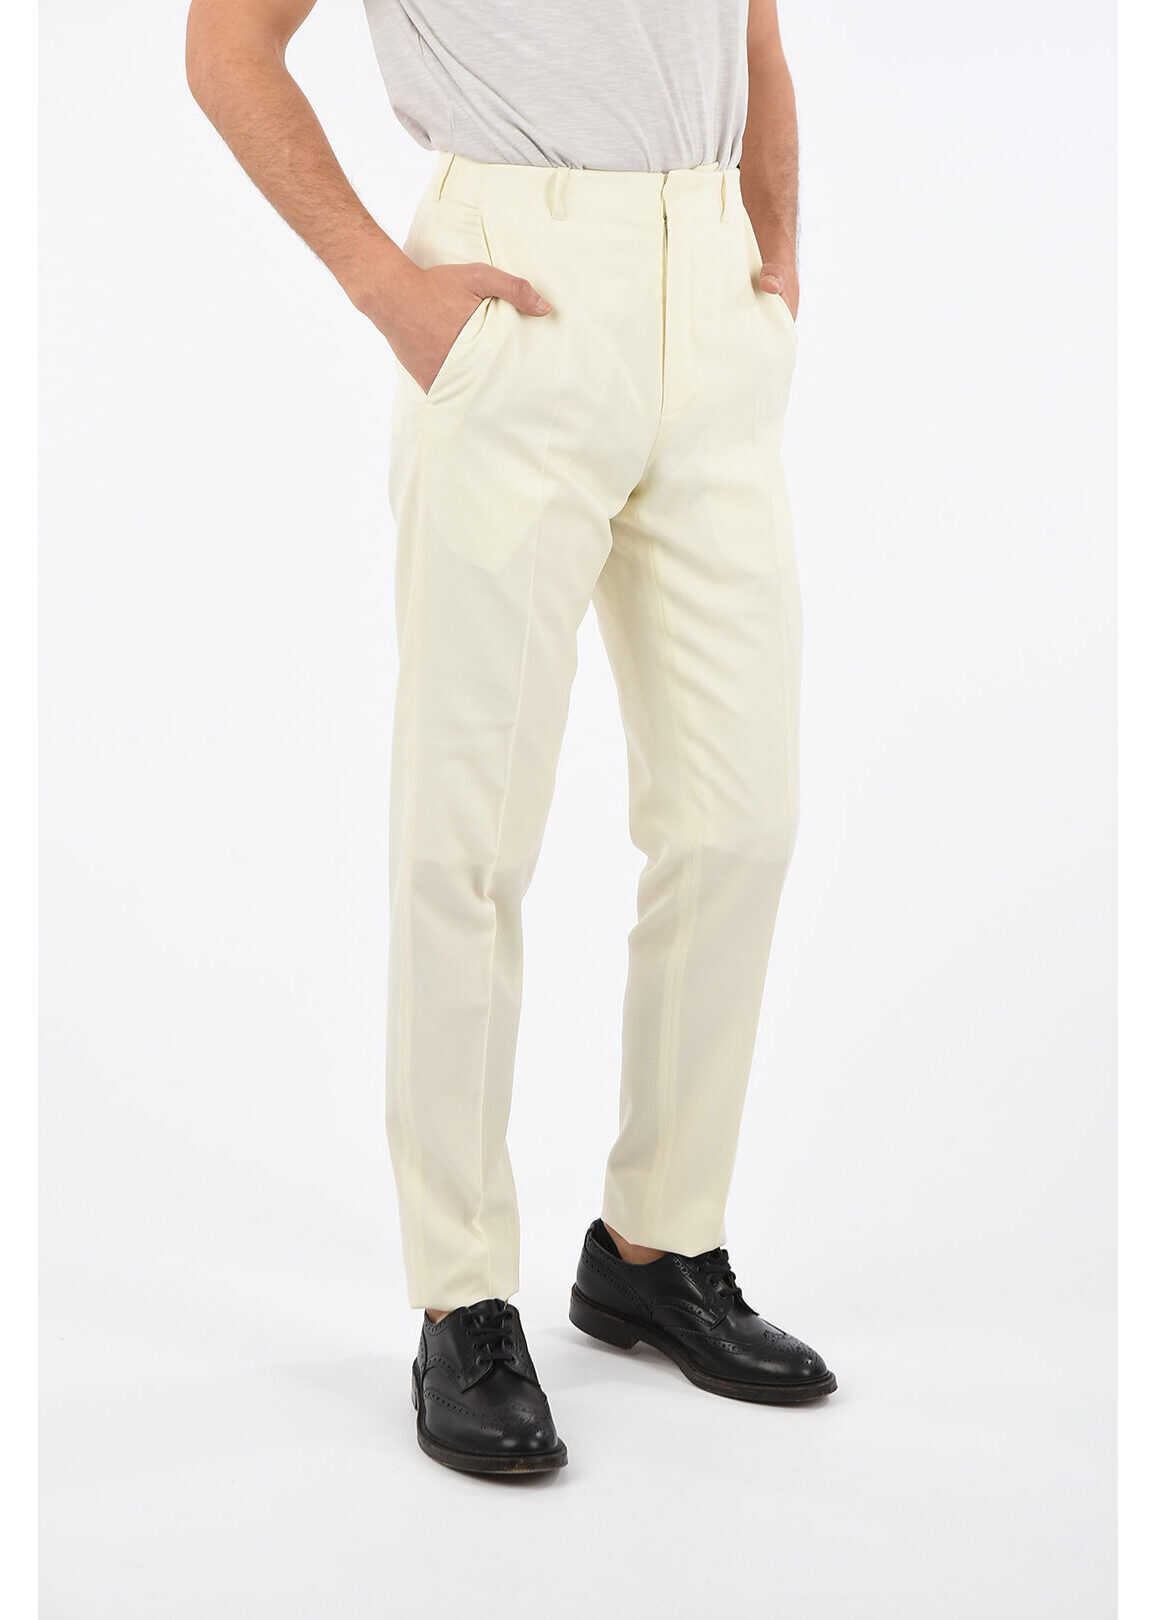 Dior HOMME Mid-rise waist single pleat pants WHITE